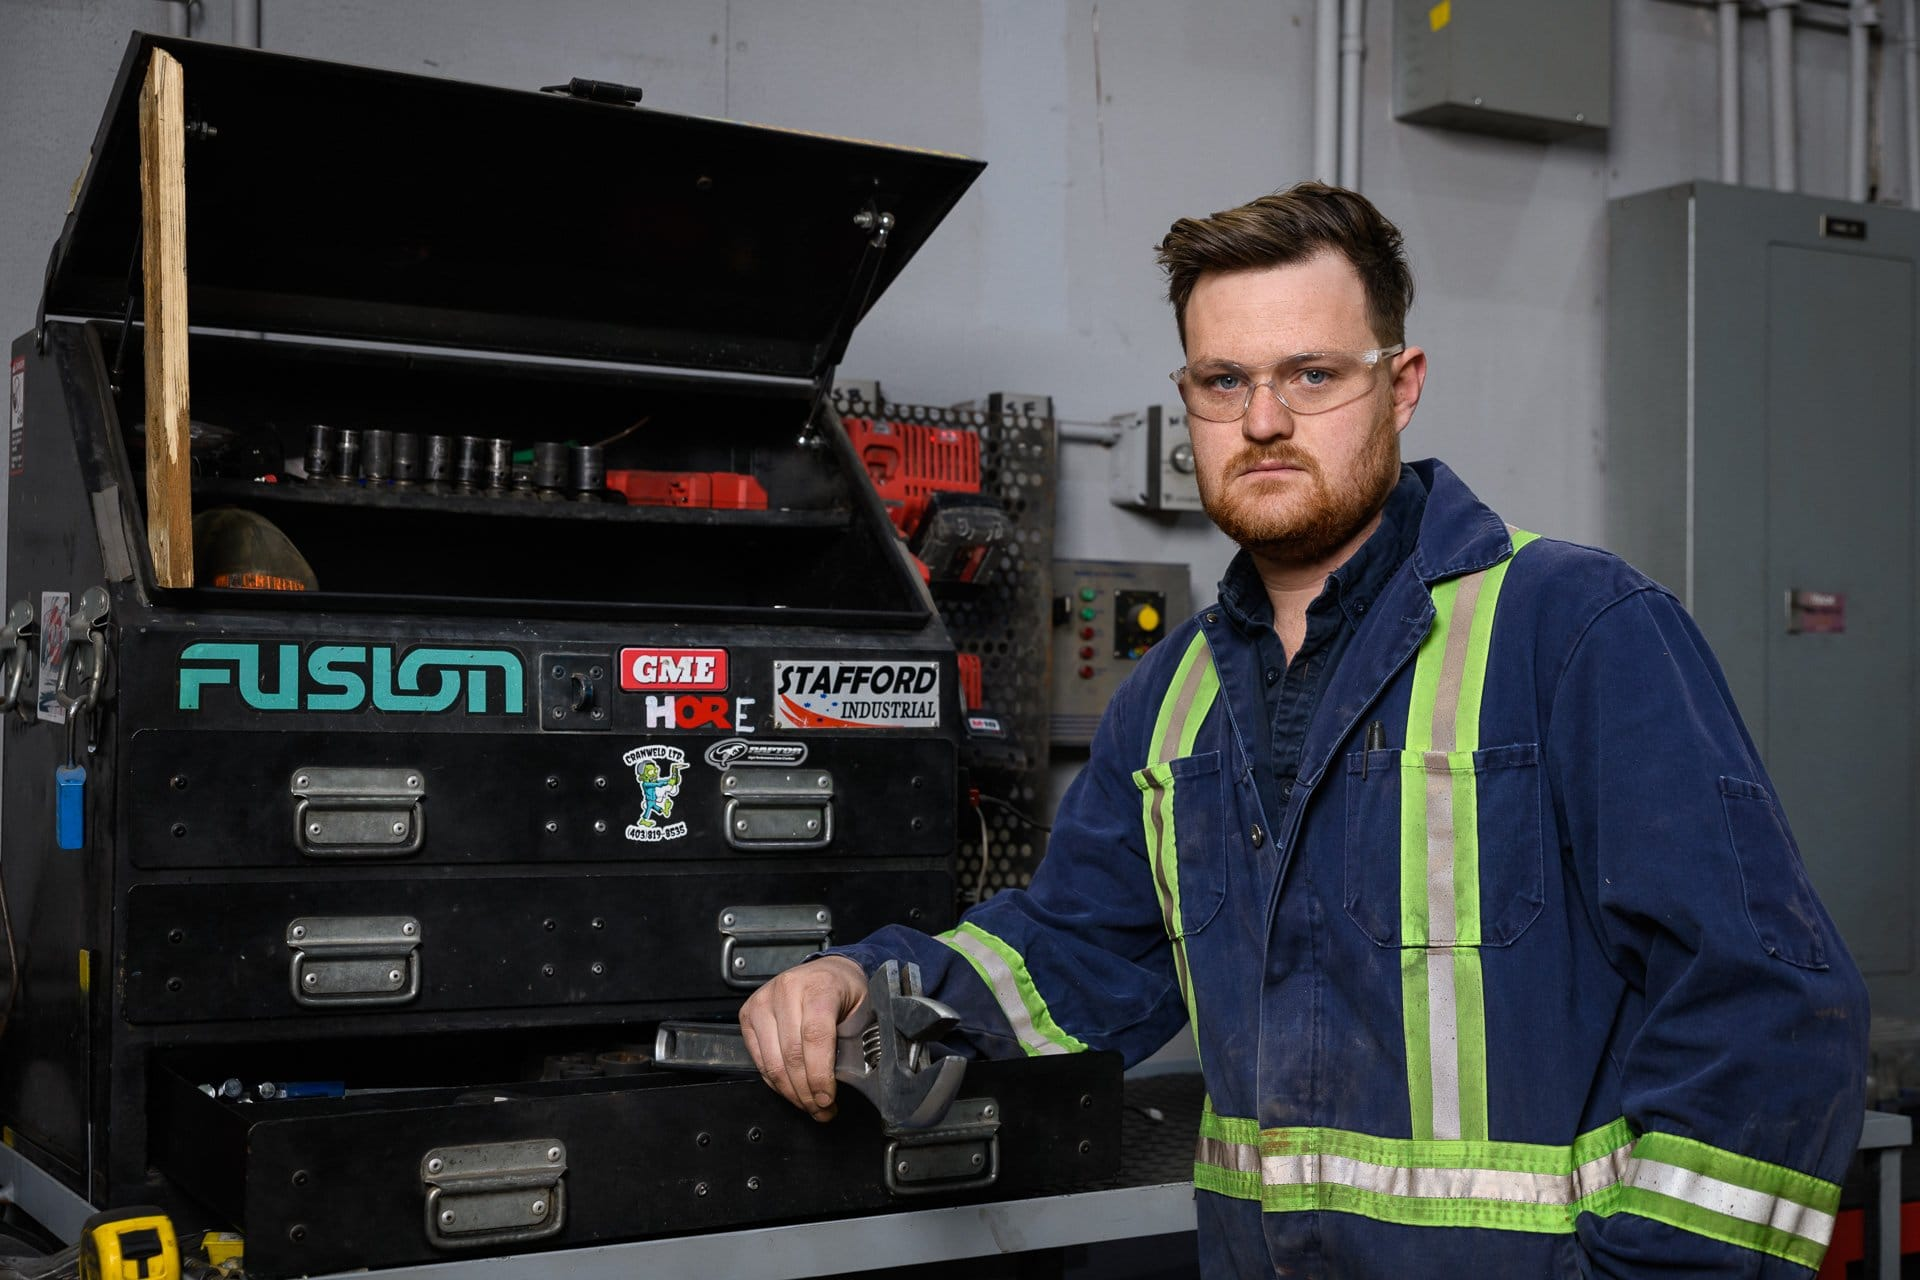 branding photography of a man and his tool box at a manufacturing plant in Calgary, Alberta by corporate branding photographer Brett Gilmour